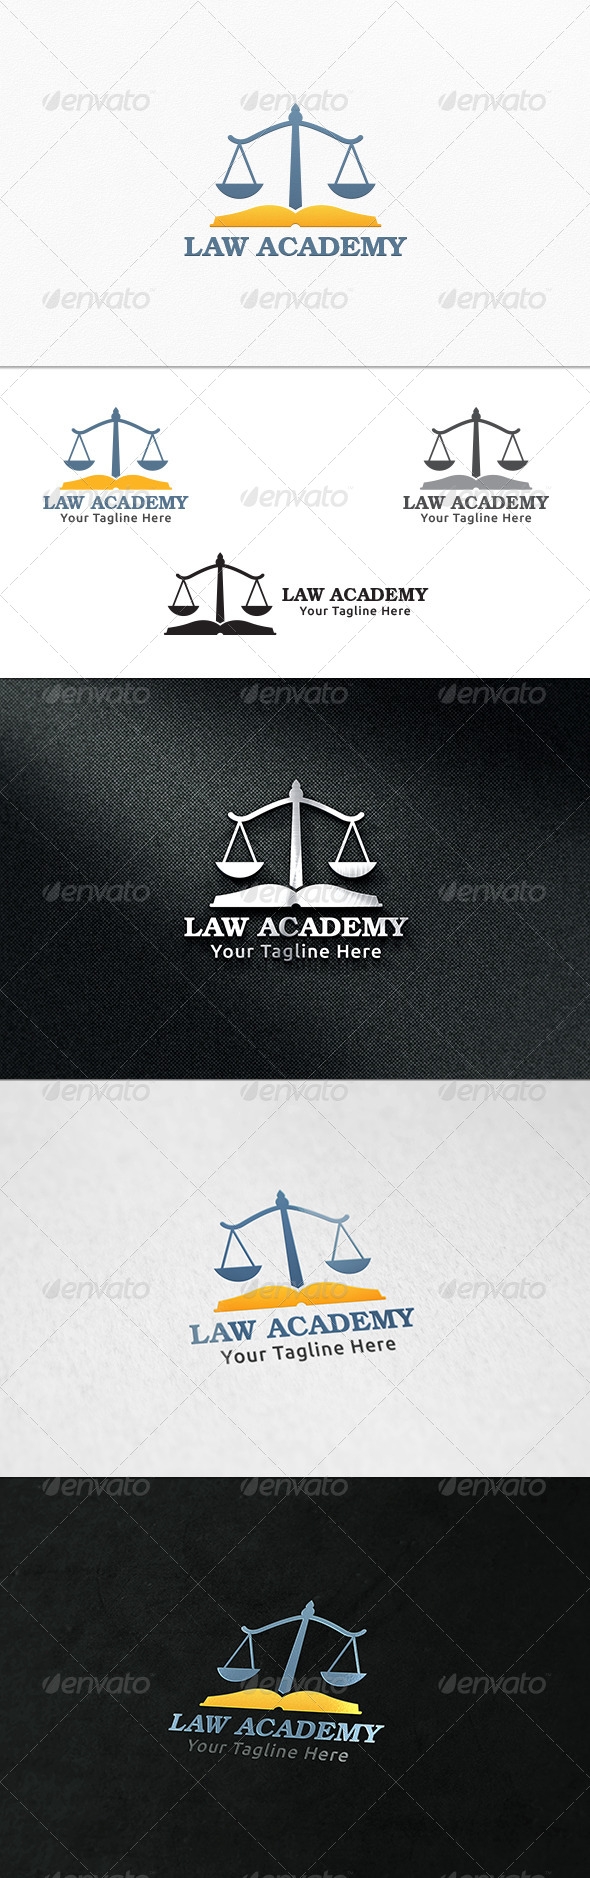 Law Academy Logo Template